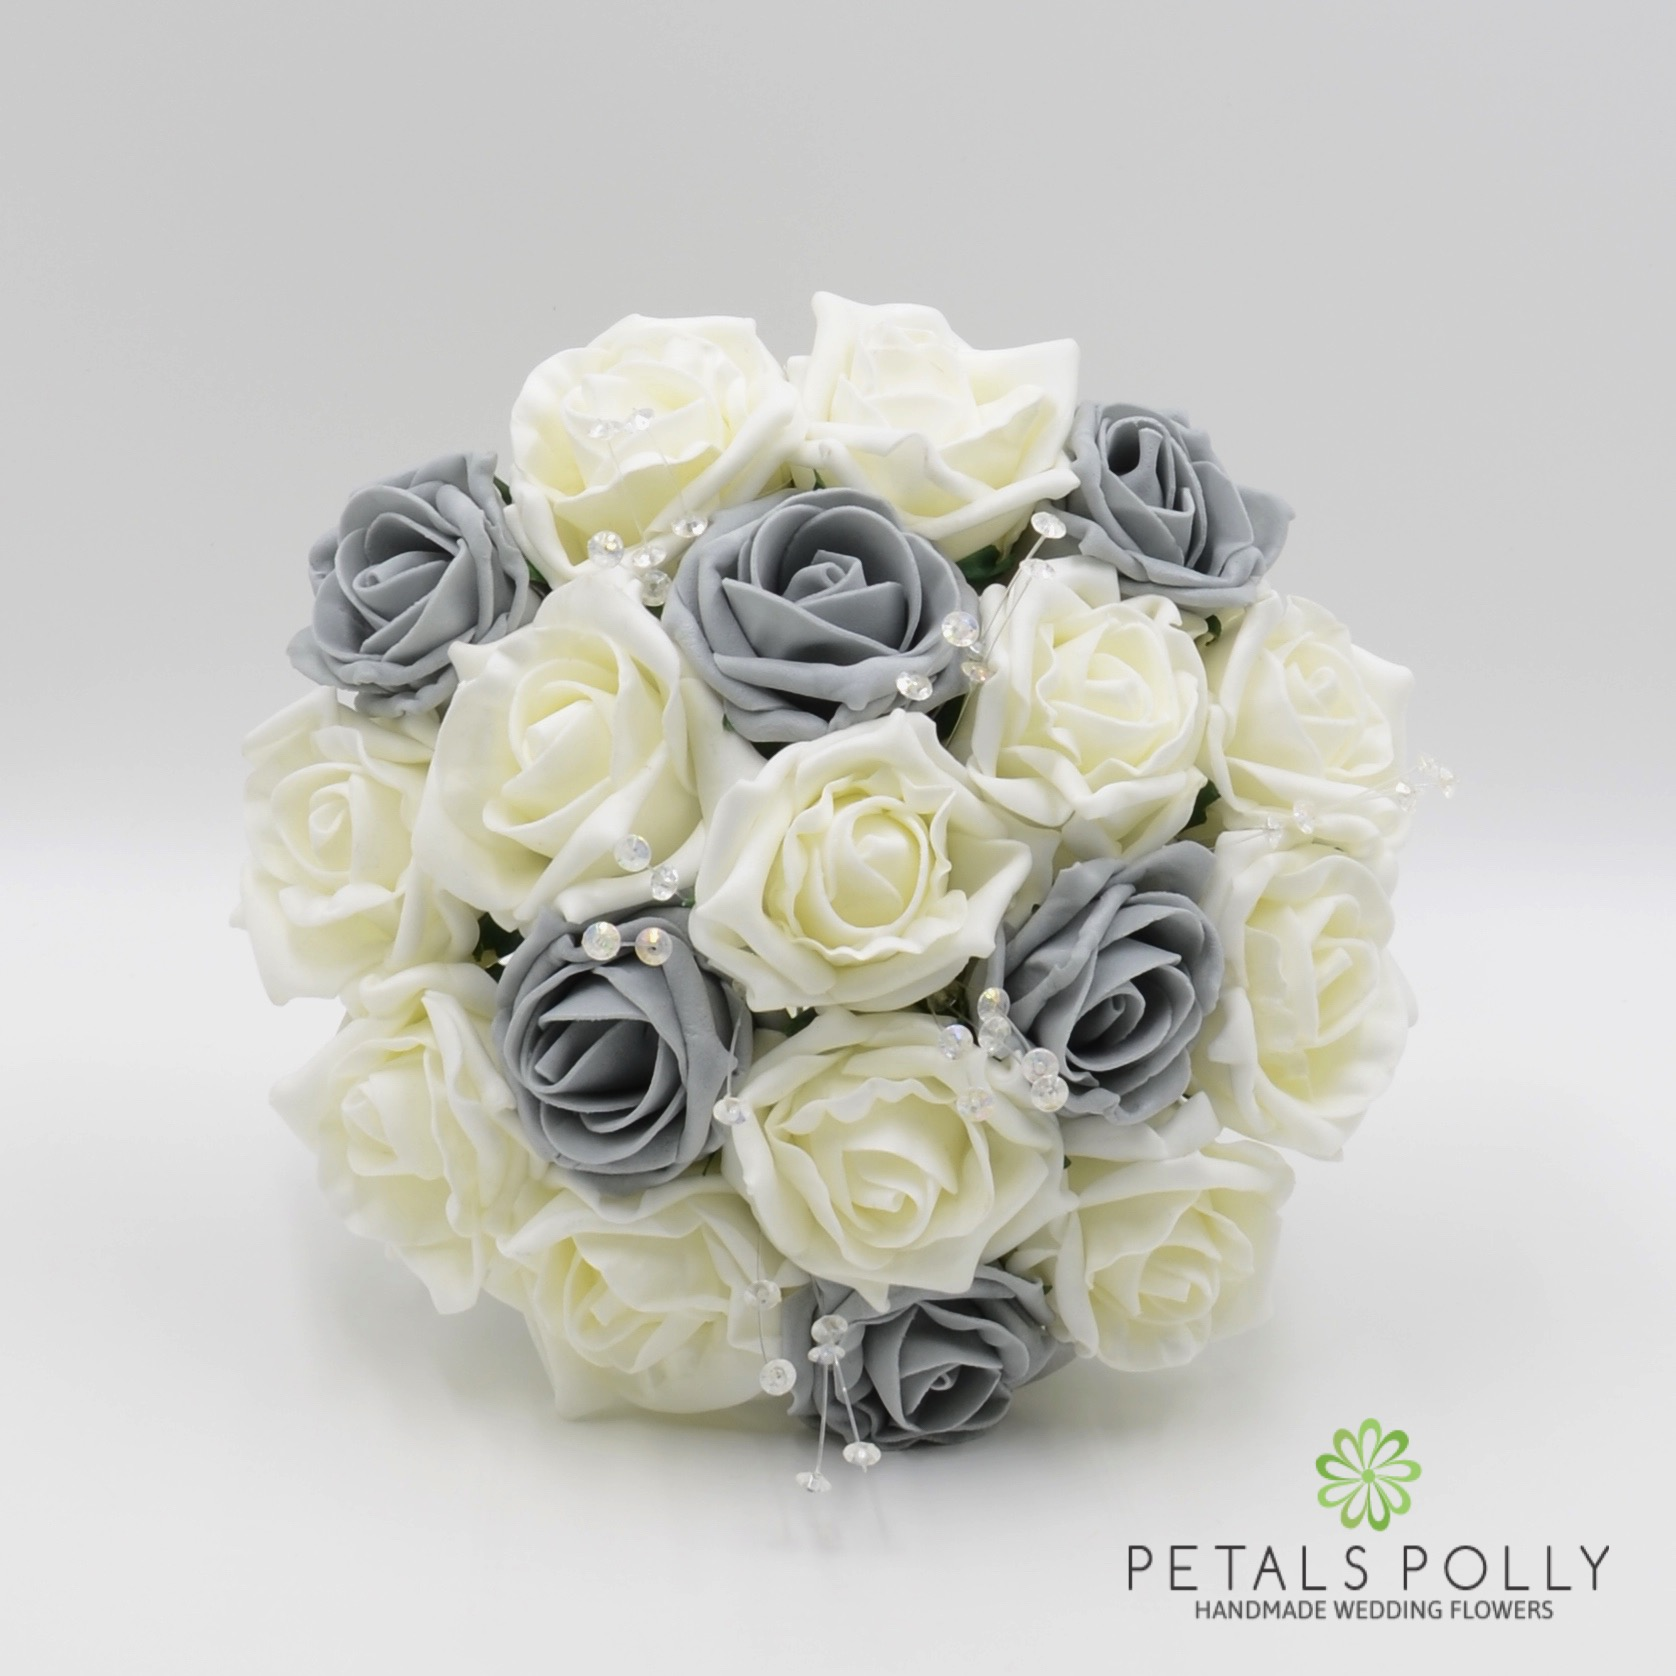 Grey & Ivory Rose Bridesmaids Posy with Crystal Stems -